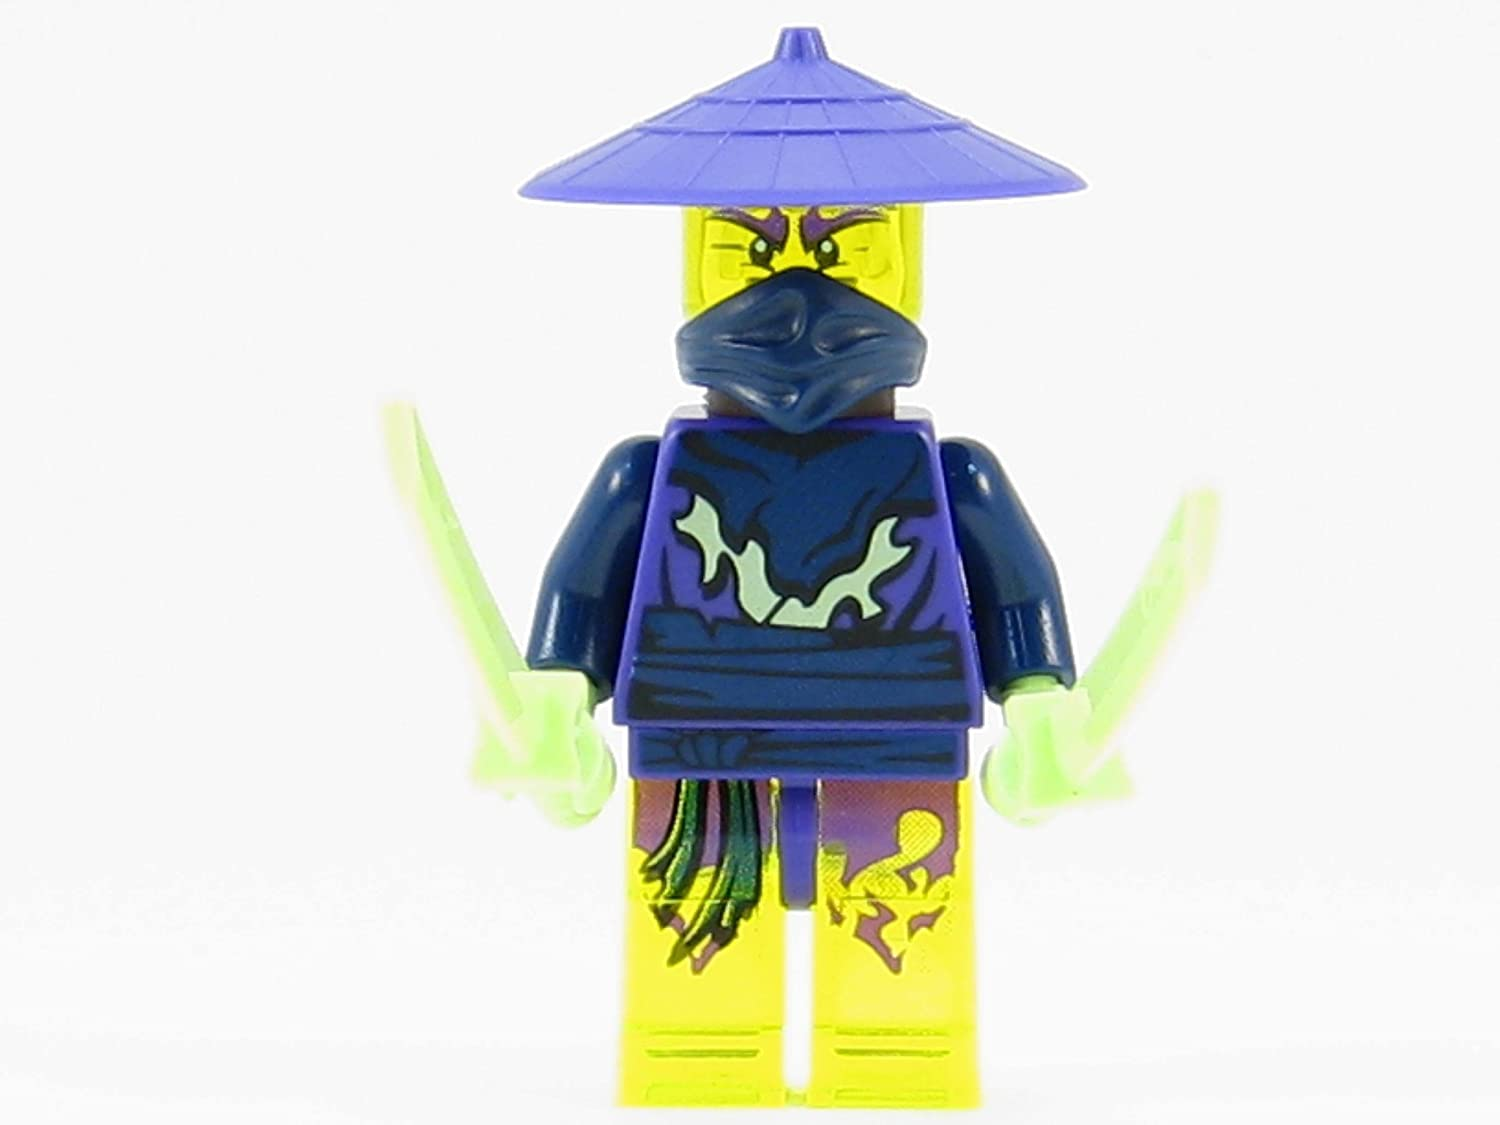 LEGO Ninjago Pitch Ghost Ninja Warrior Minifigure NEW 2015 70734